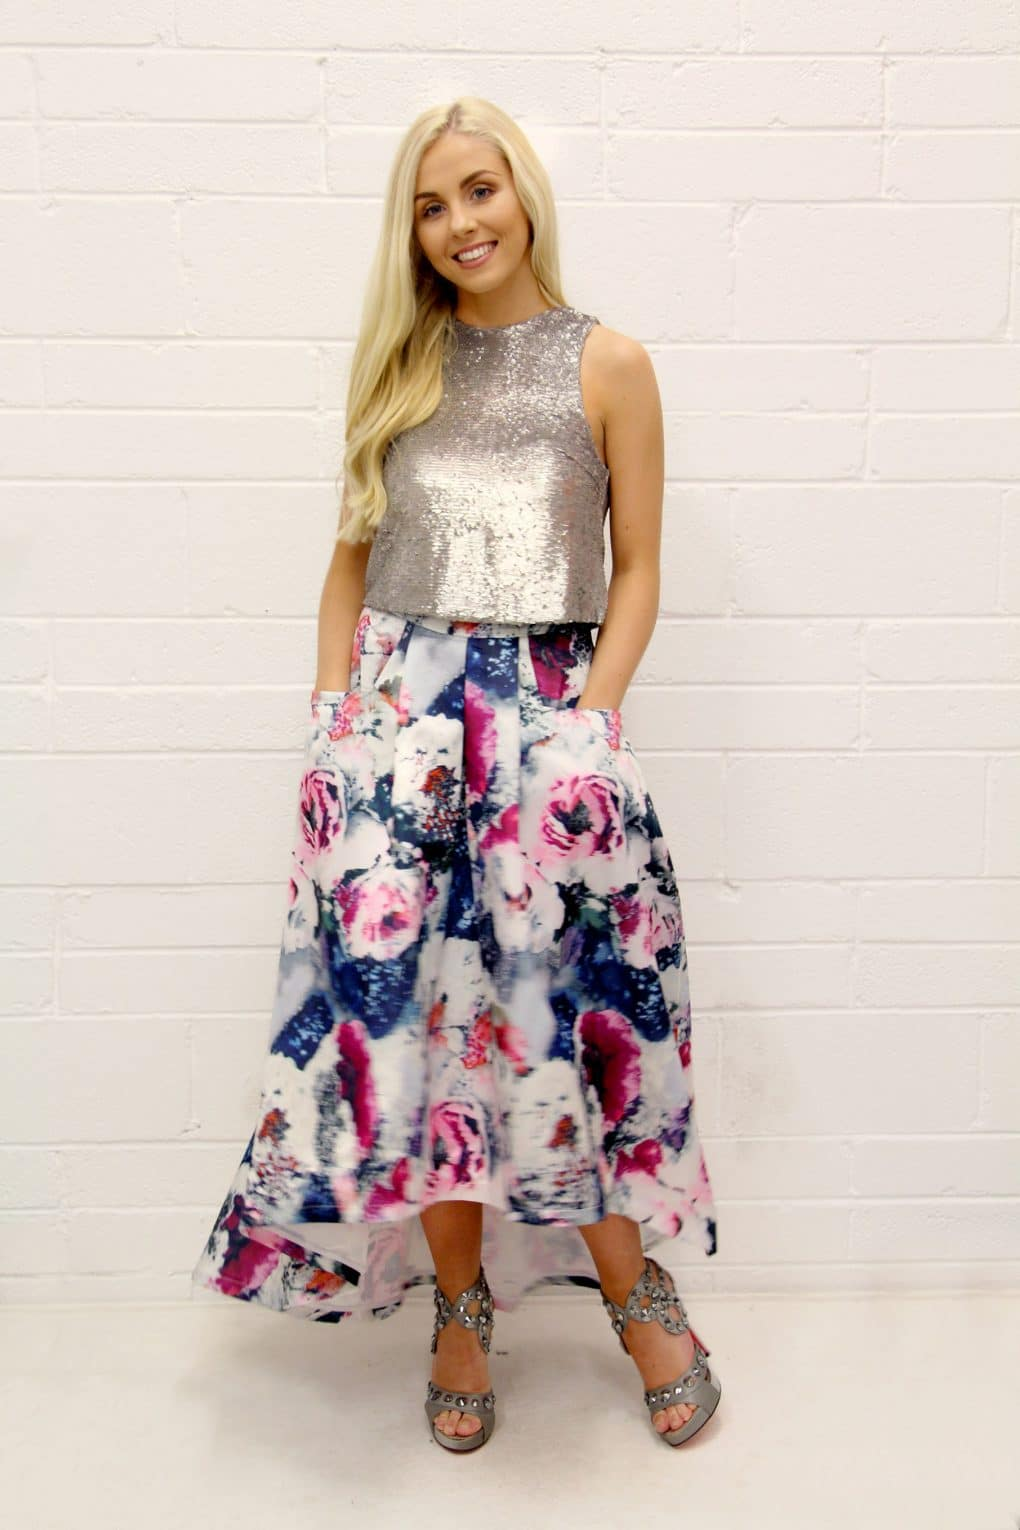 Alila-Silver-Crop-Top-Angeleye-Floral-Skirt-Jolie-Moi-Shoes